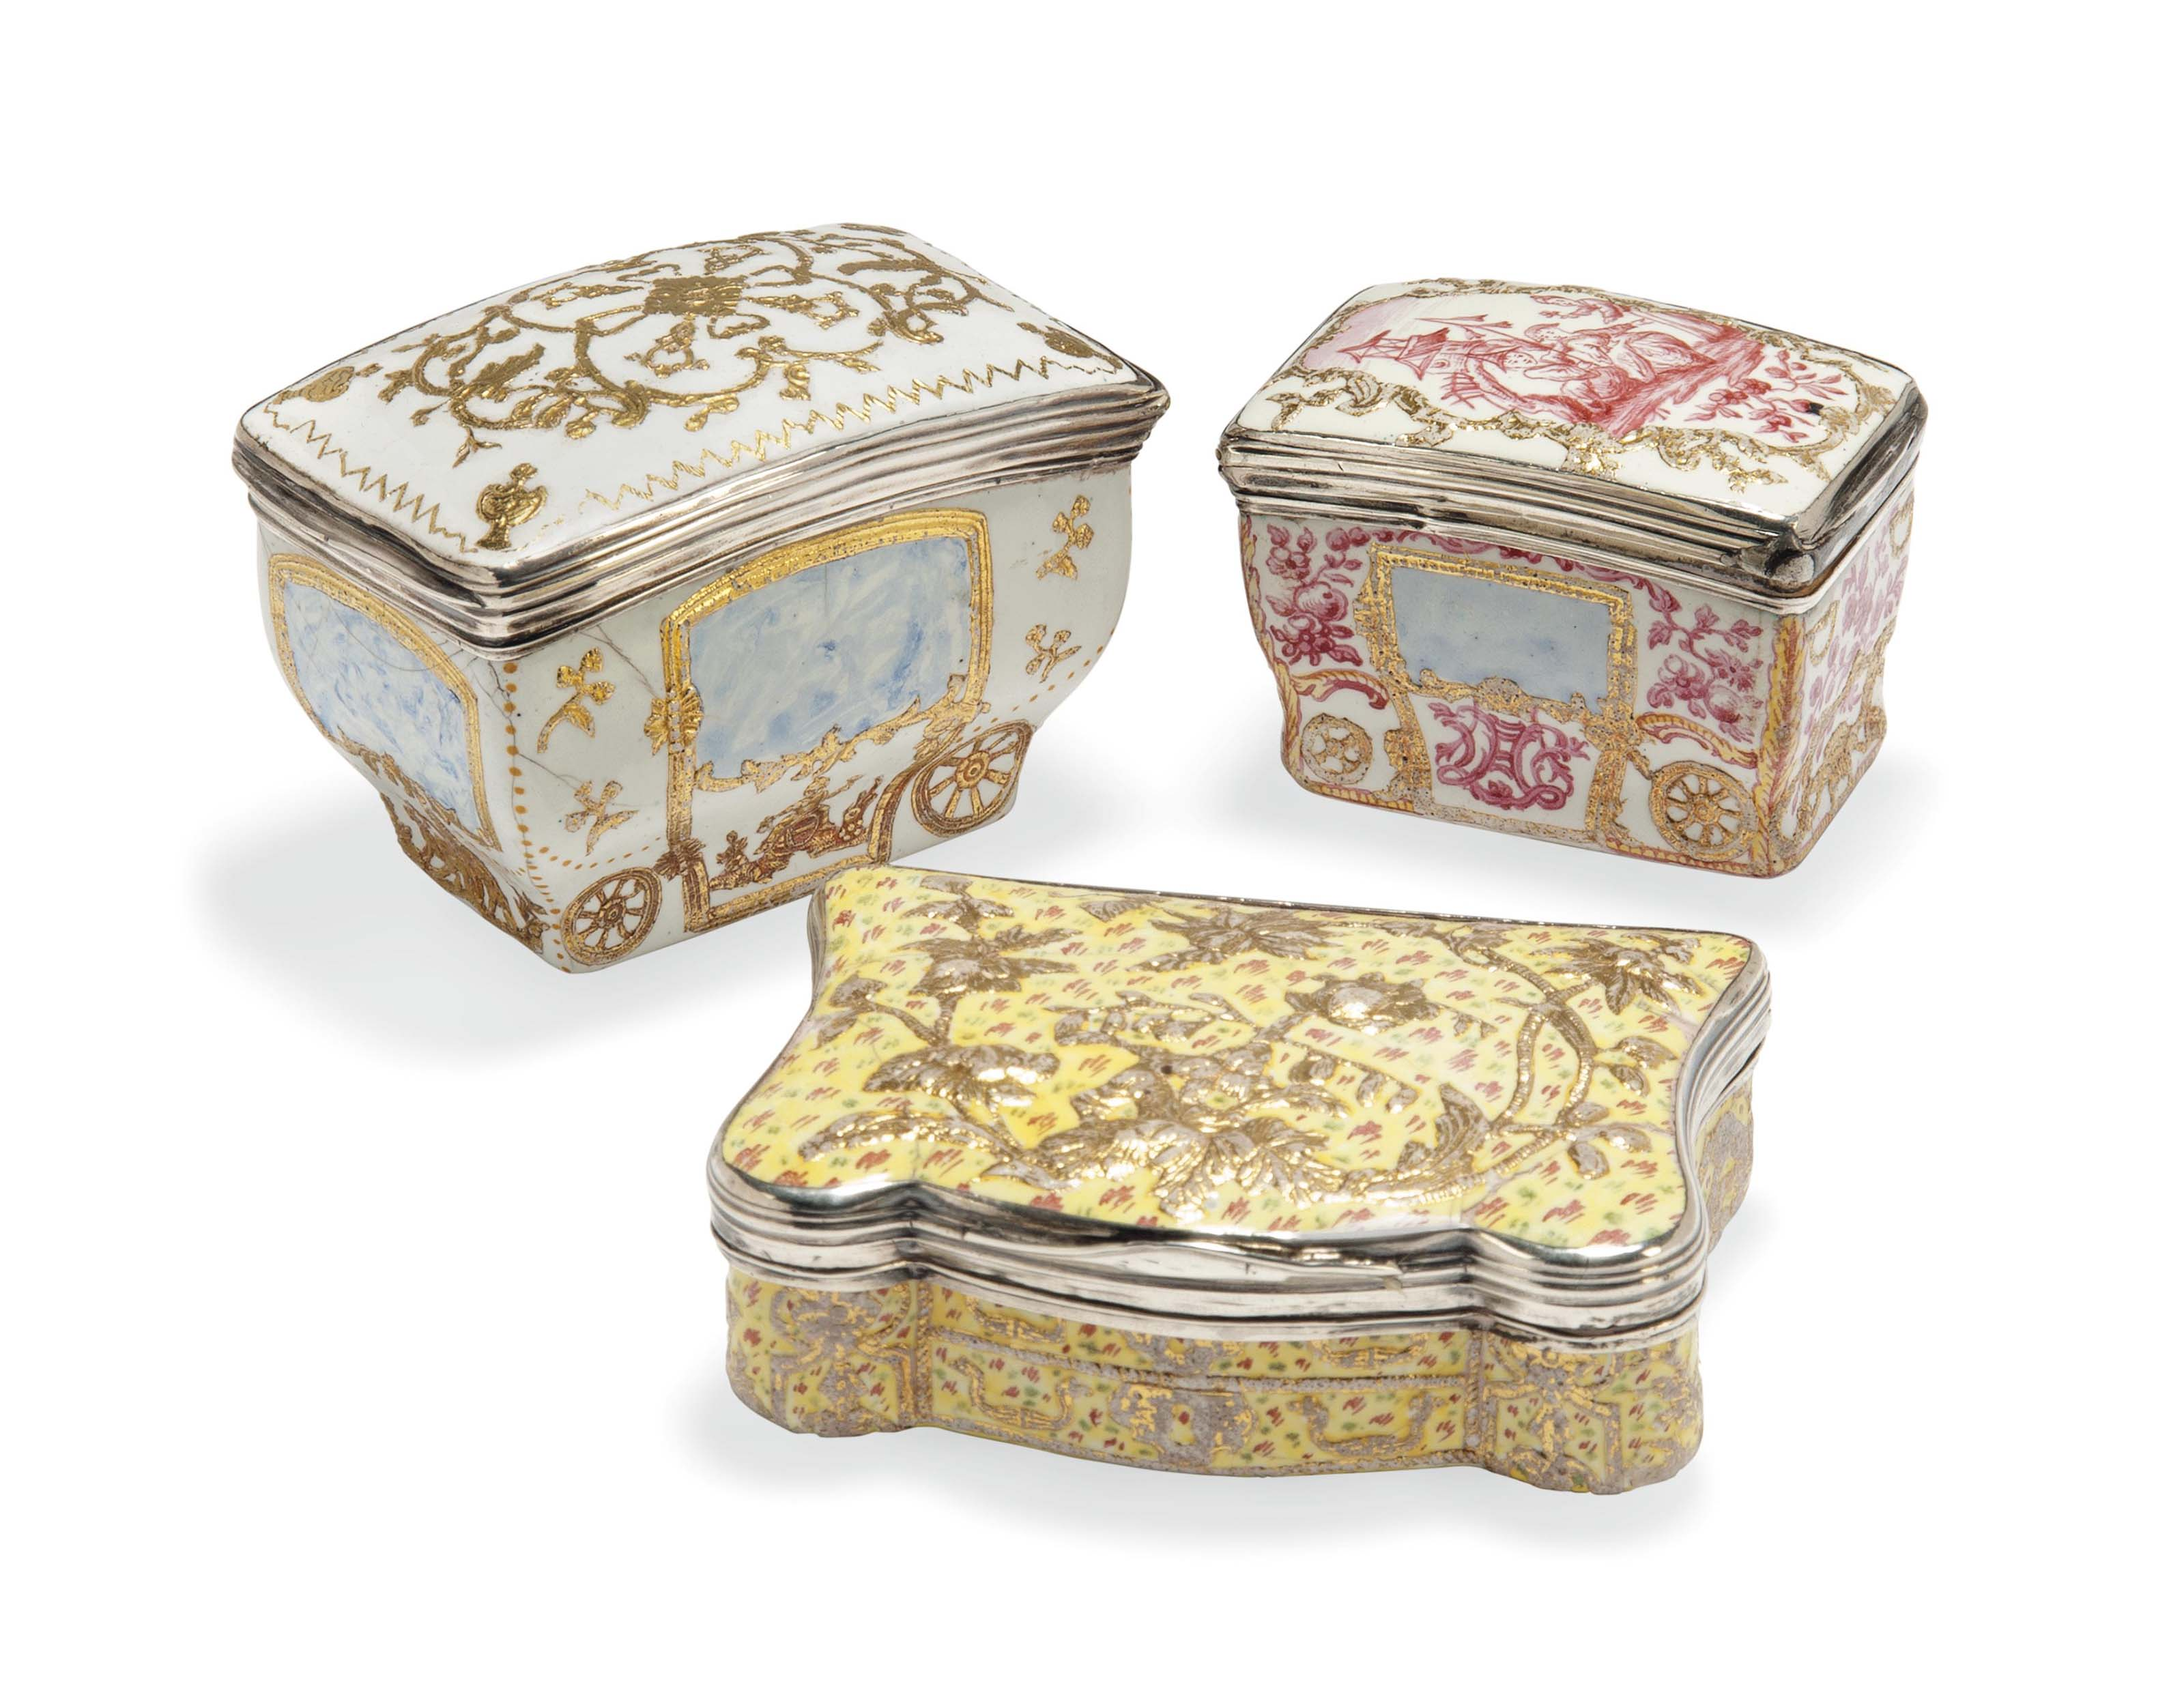 A GROUP OF THREE LOUIS XV SILVER-MOUNTED ENAMEL SNUFF-BOXES